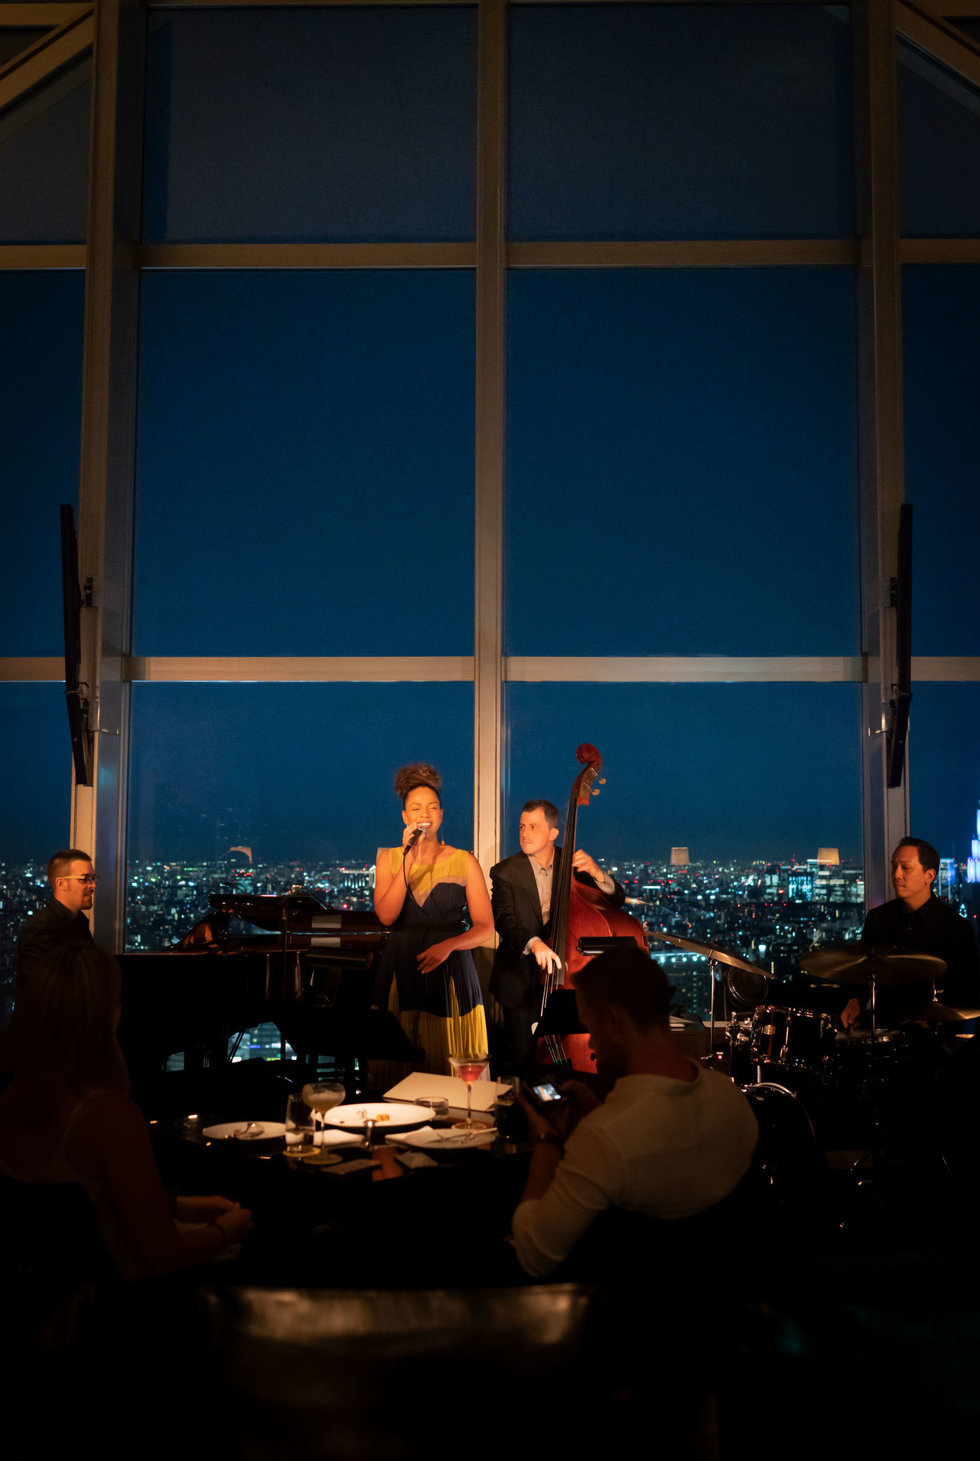 A jazz band at the New York Bar in Tokyo